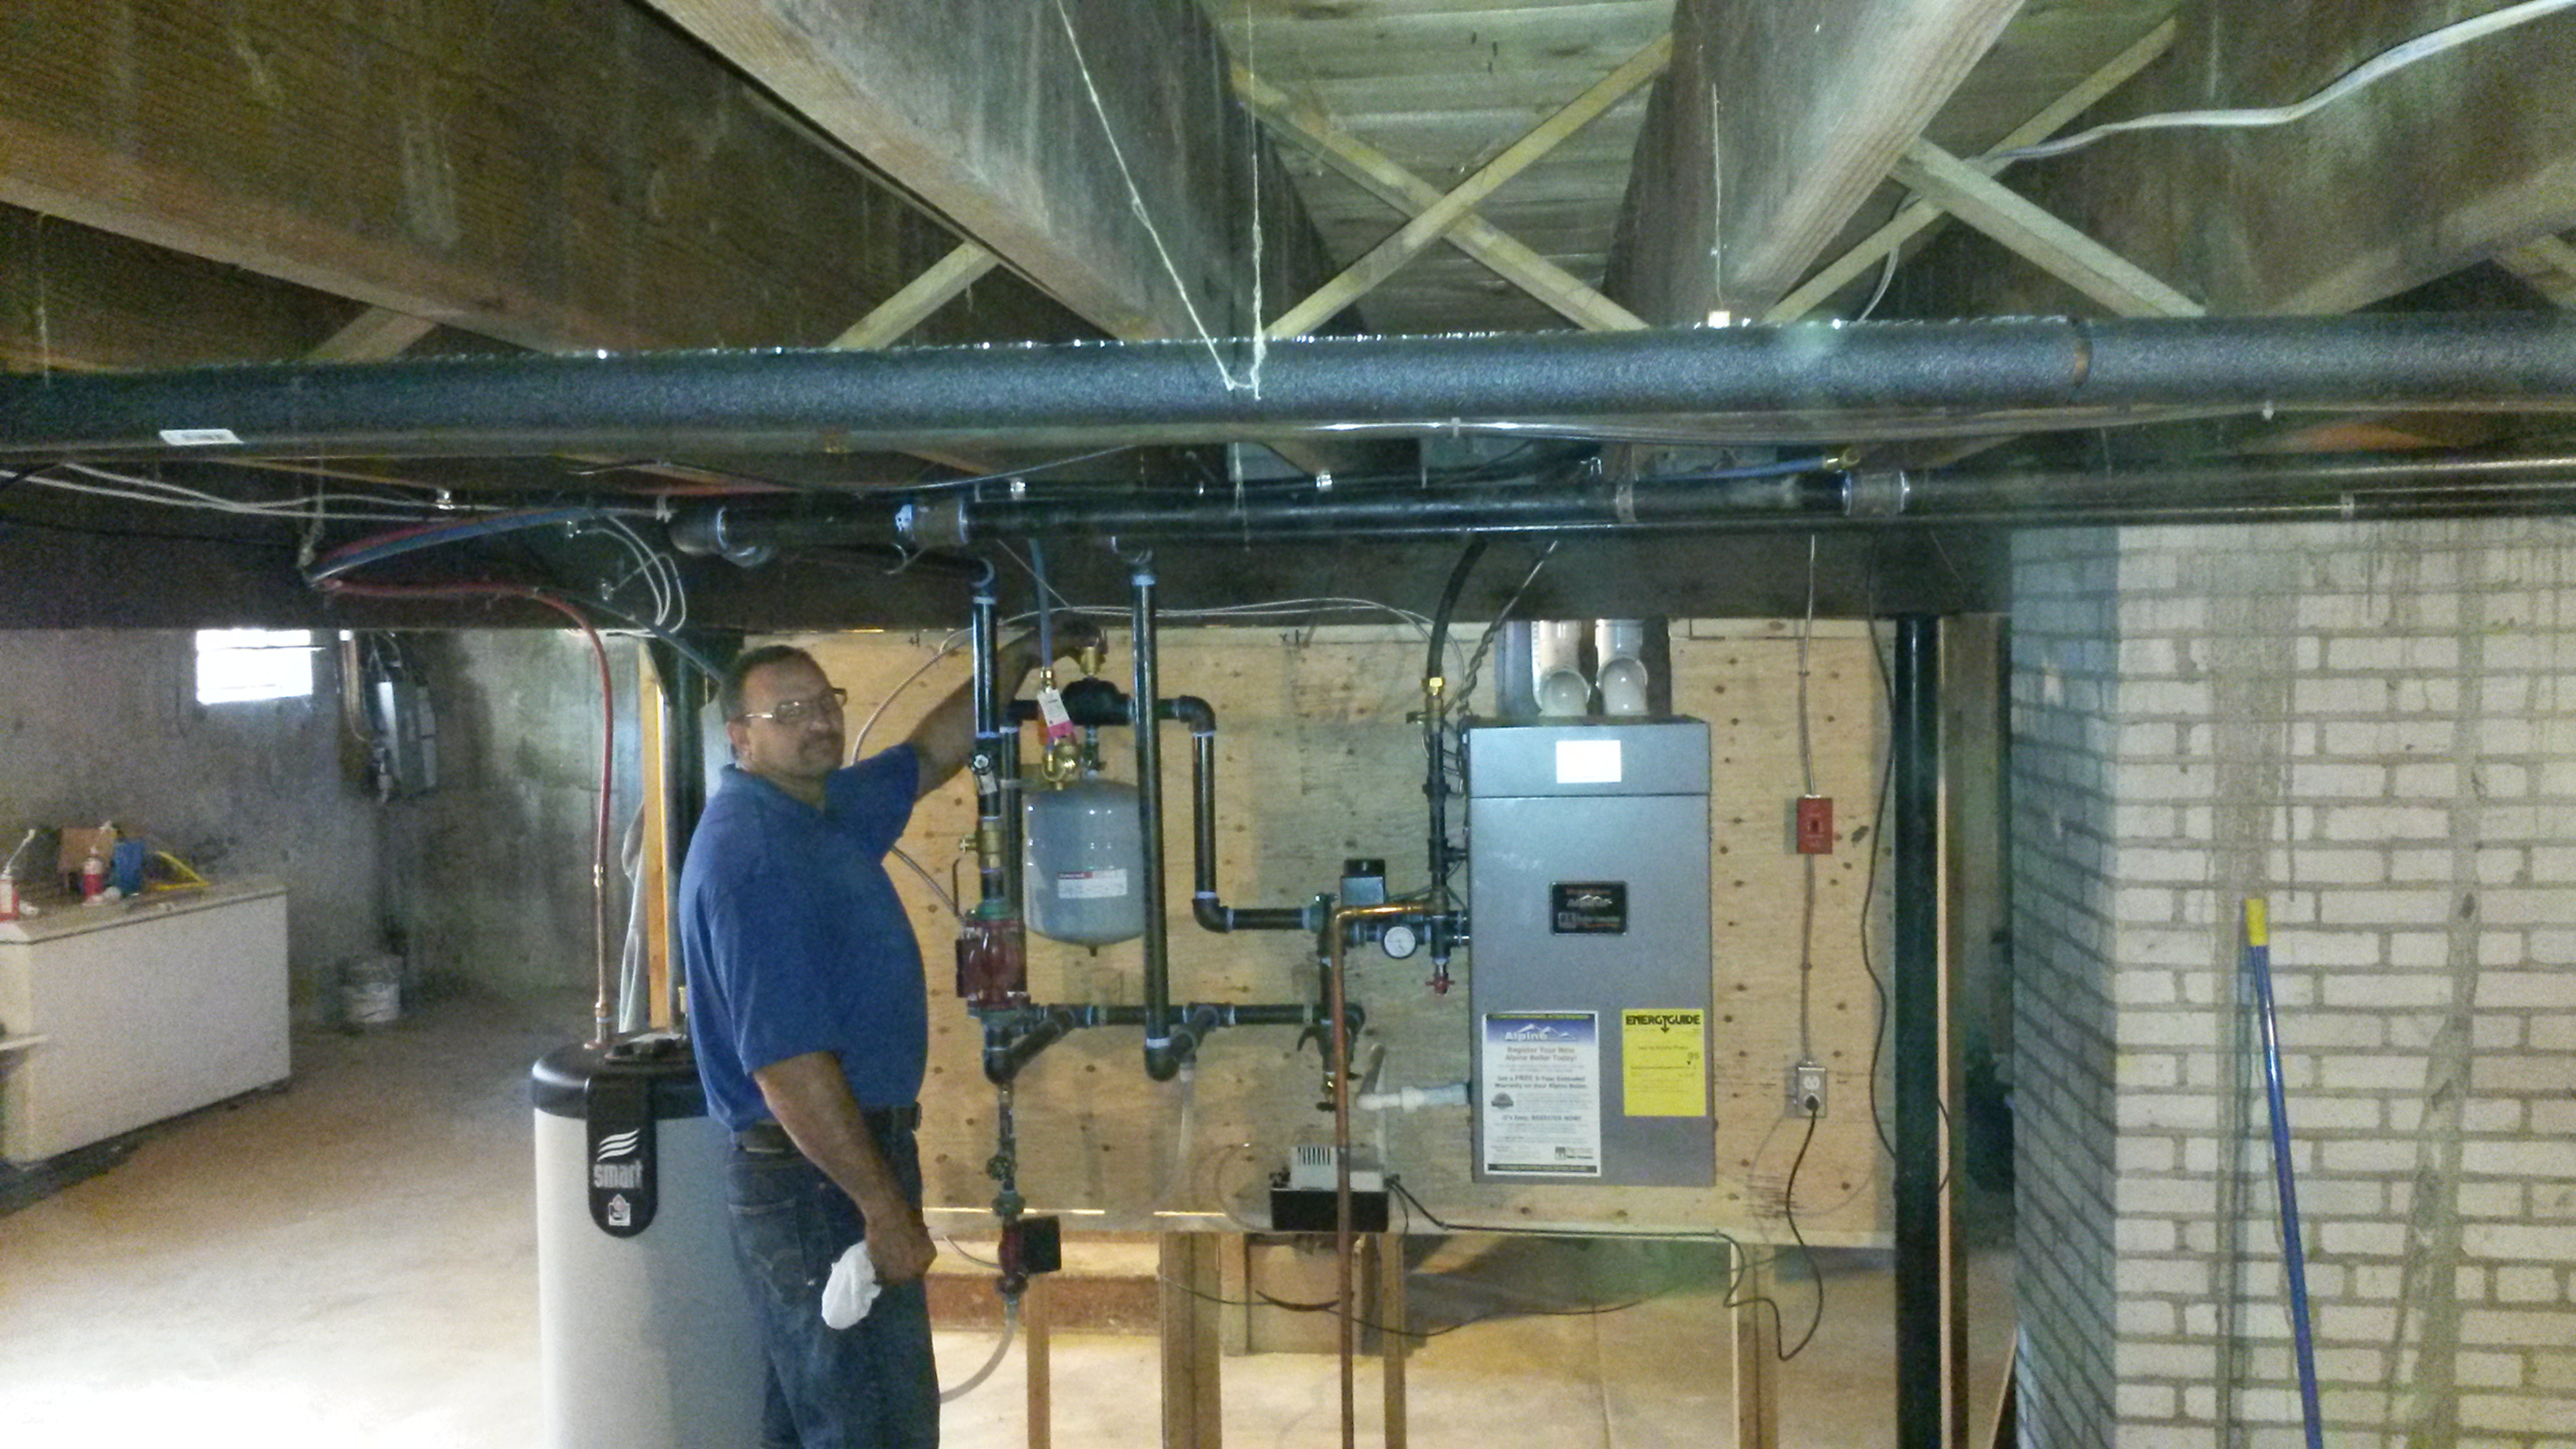 RI`s Affordable Heating Air-Conditiong Services inc image 1